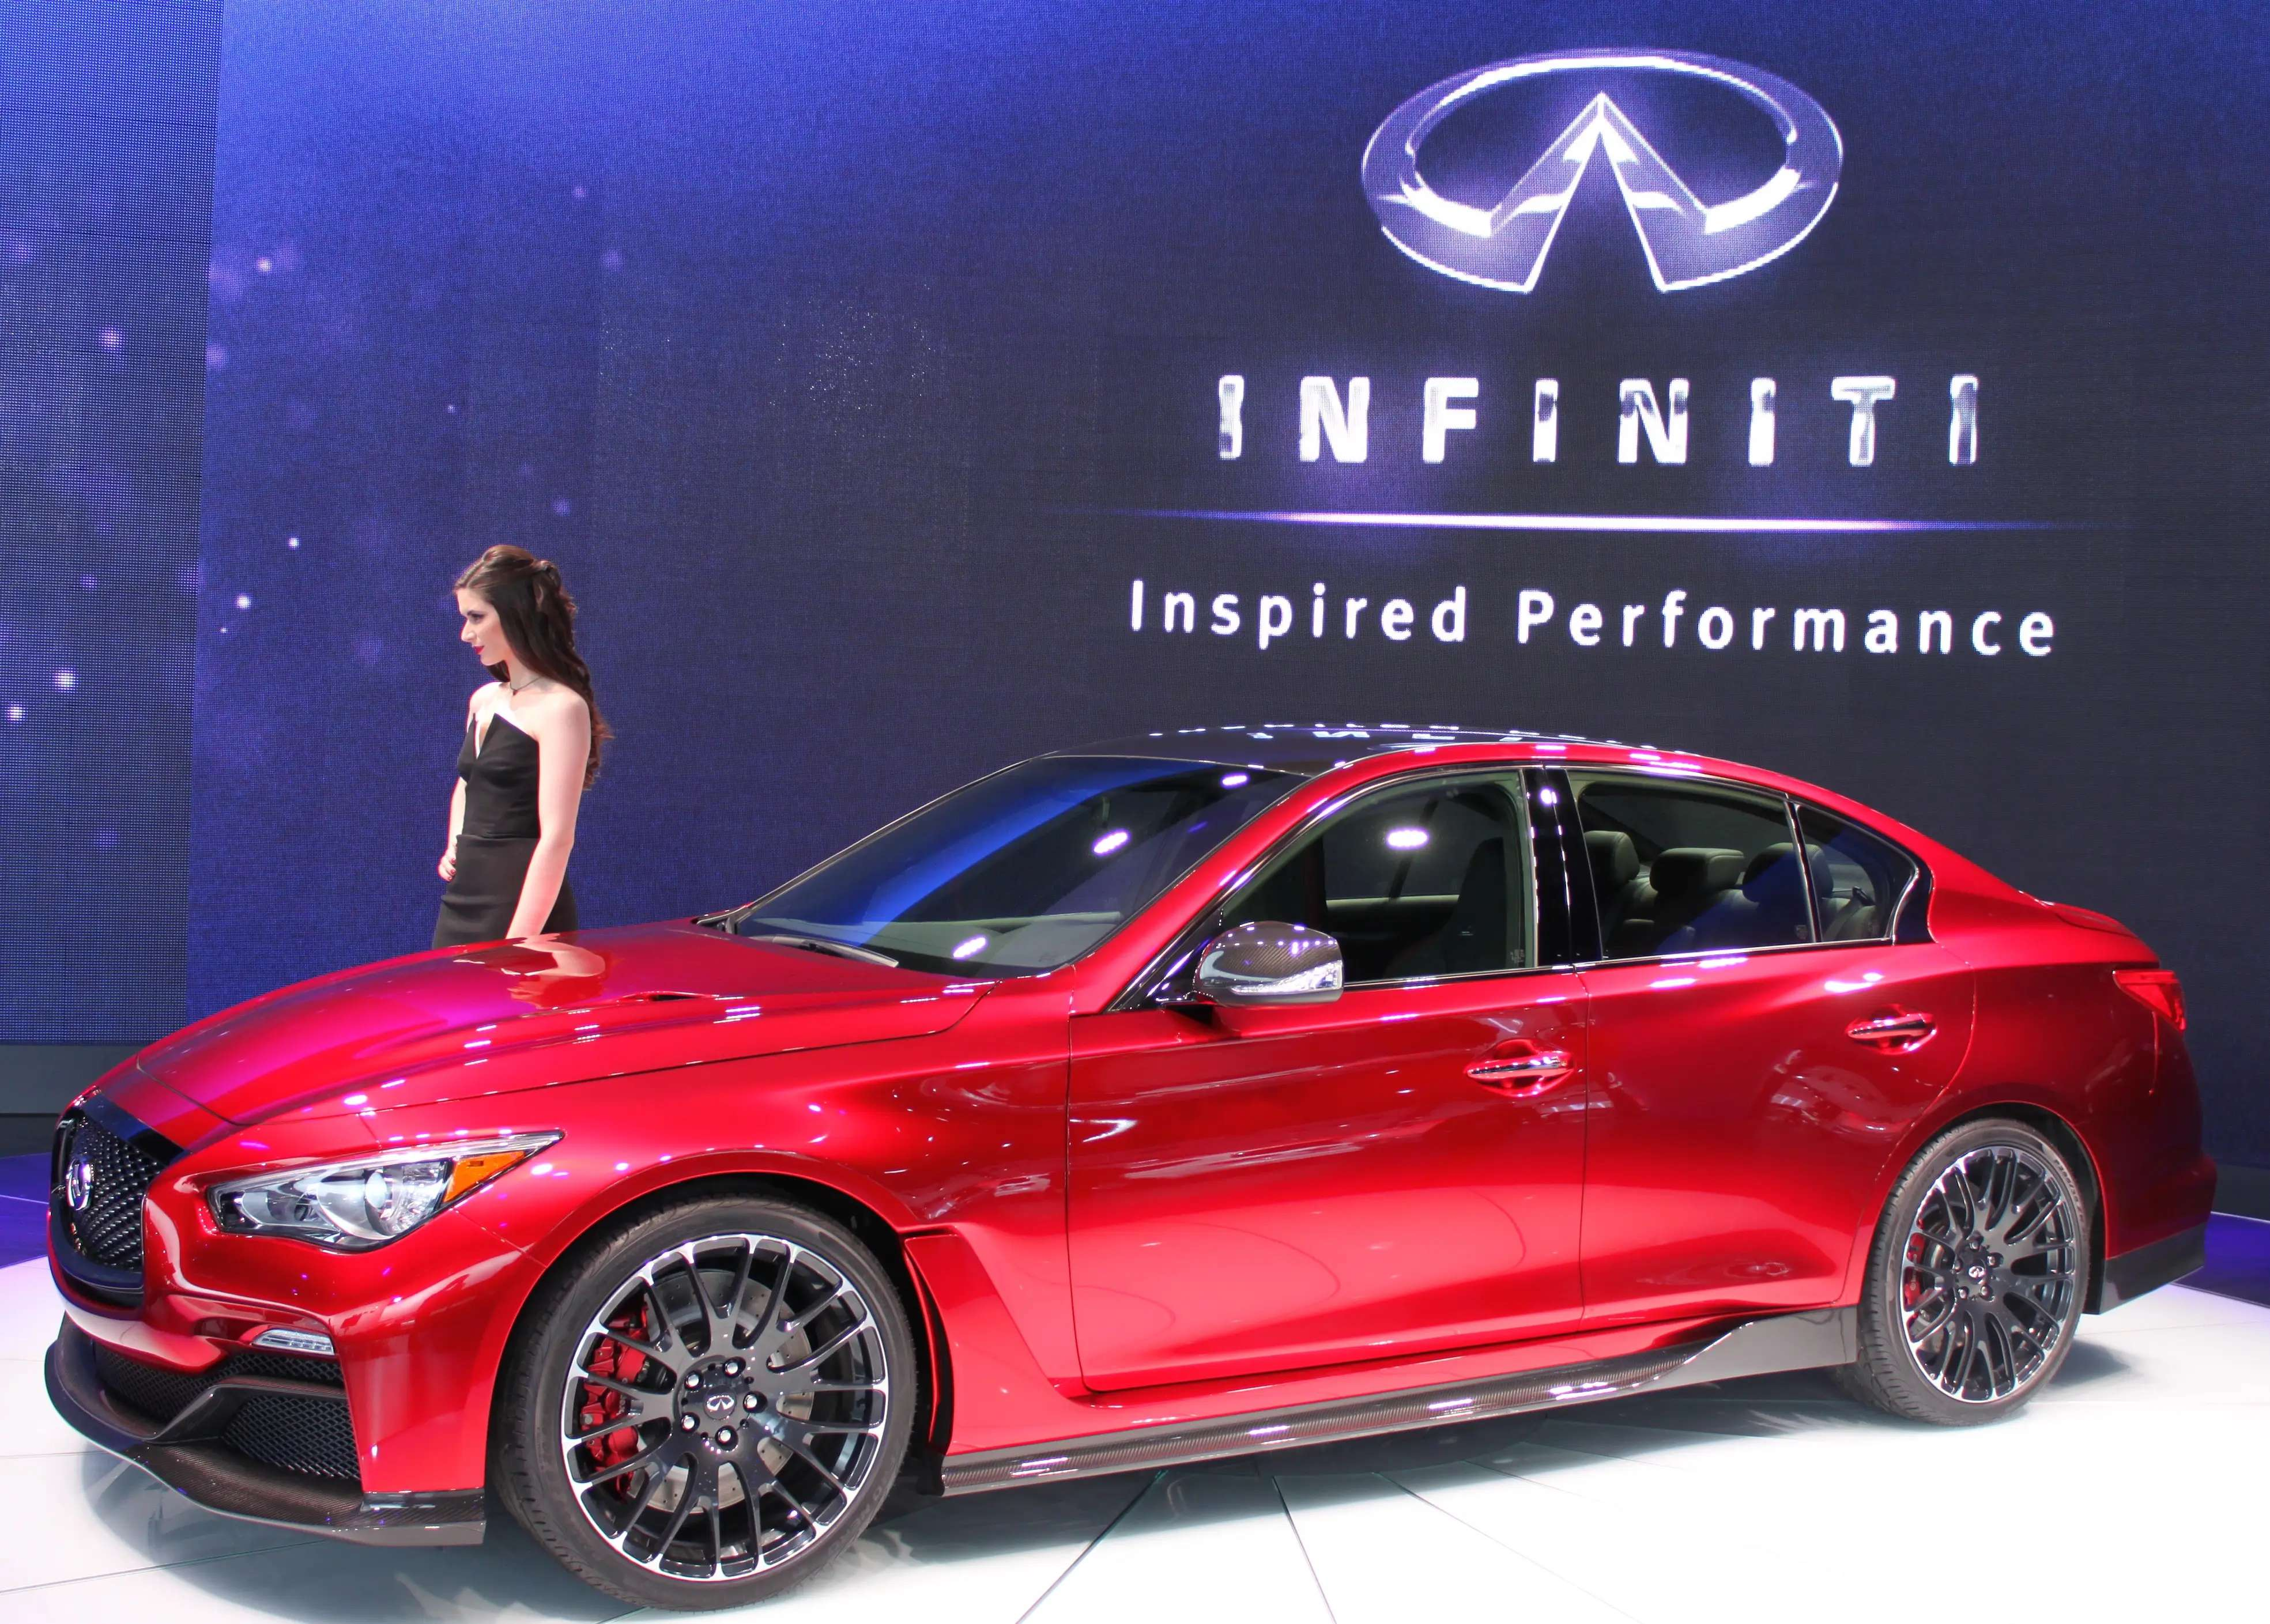 Infiniti will do itself a favor if it turns the gorgeous Q50 Eau Rouge concept into a production car. With over 500 horsepower, it would give Nissan's luxury brand a better shot at competing with big players like BMW and Mercedes.